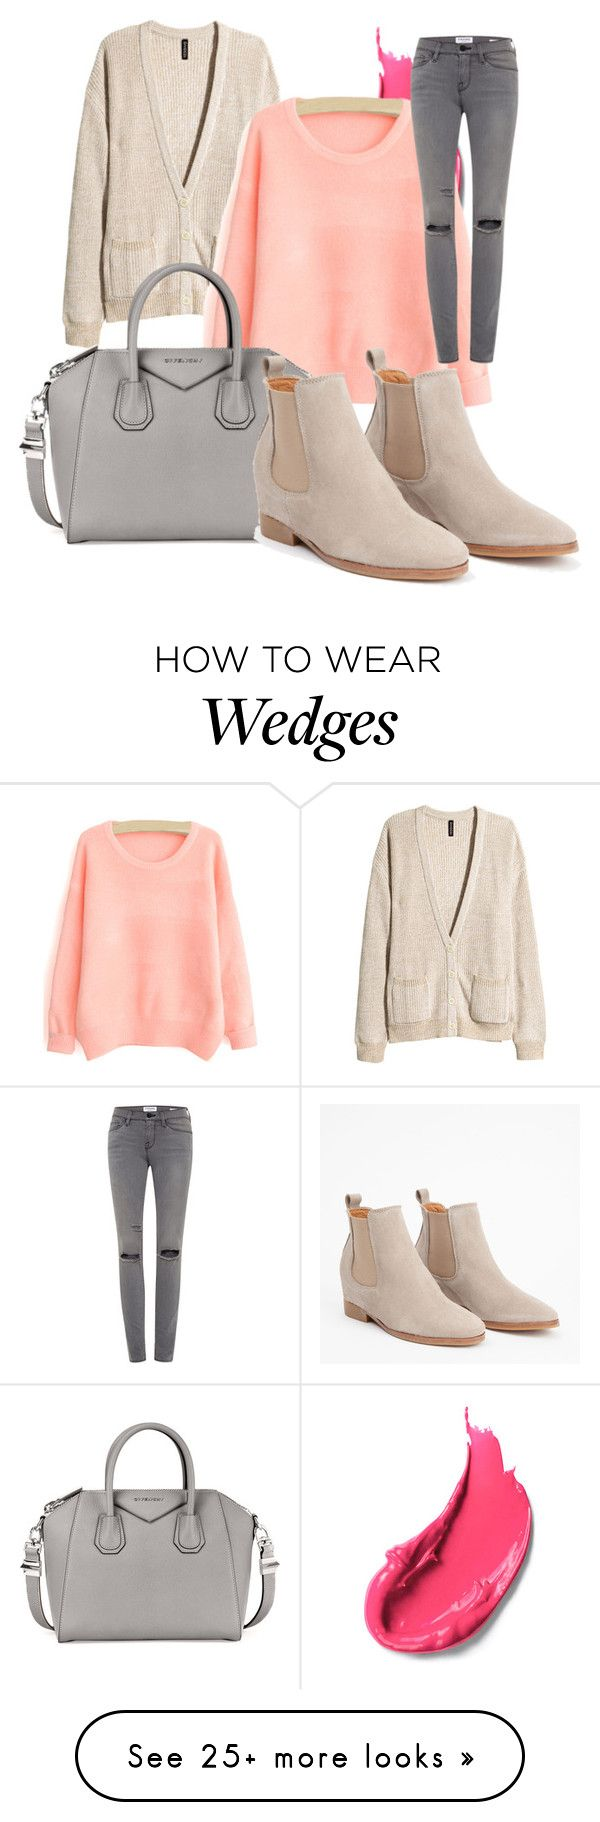 """Untitled #282"" by samyalltheway on Polyvore featuring H&M, Givenchy and Frame Denim"